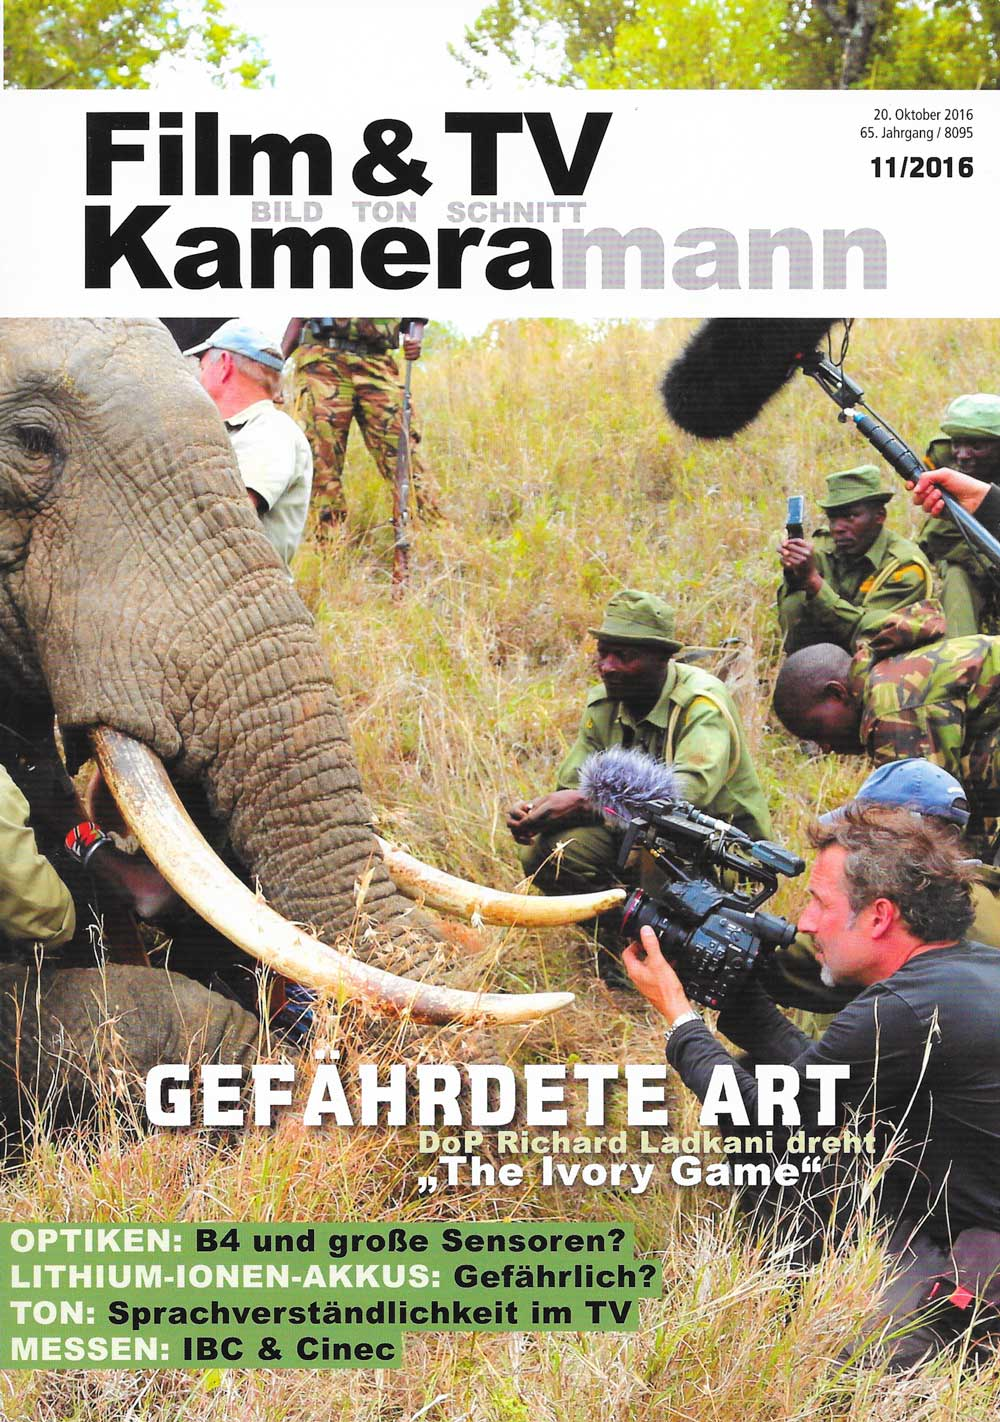 Film und TV Kameramann Magazine Cinefade press cover